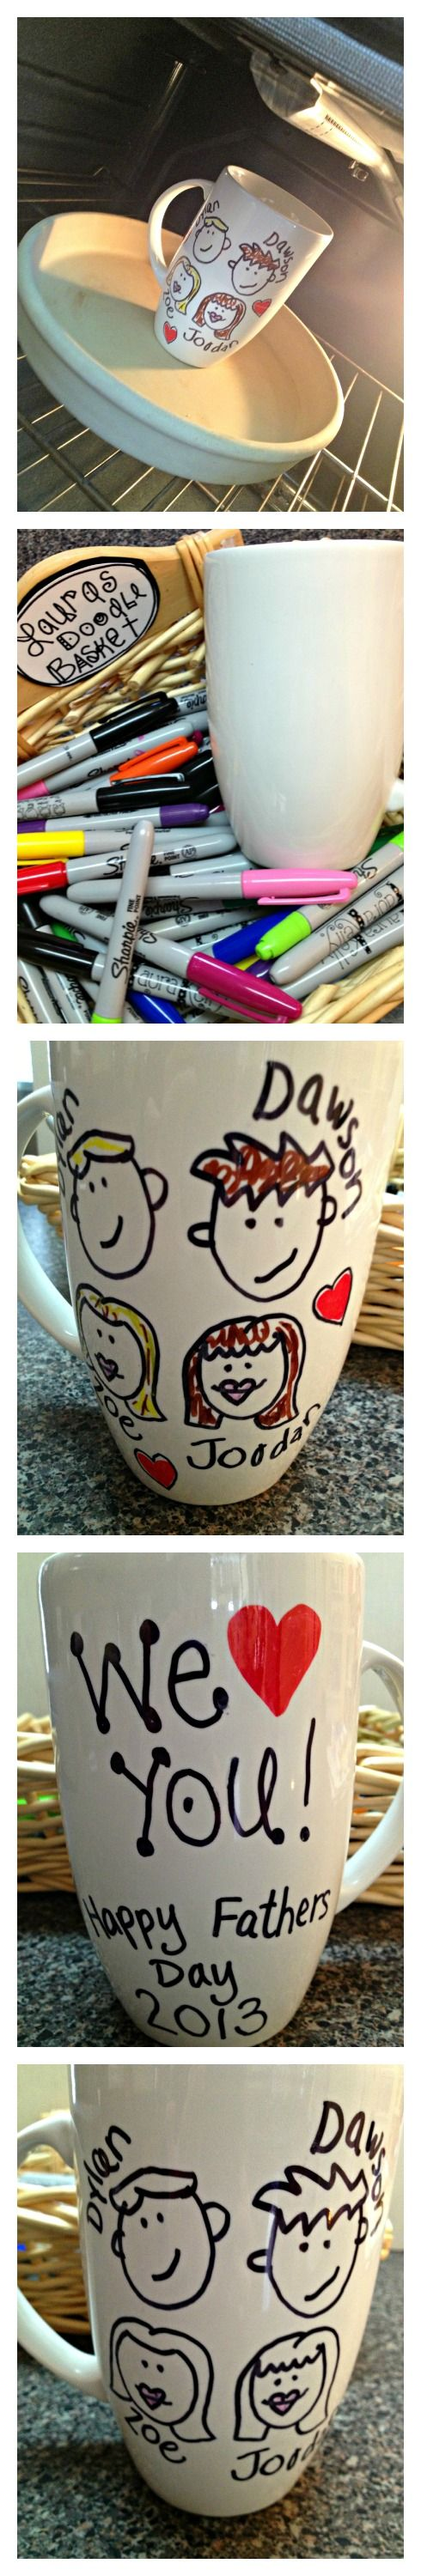 Sharpie Doodles on Ceramics...bake at 400 degrees and wahlah...a masterpiece is created!  #laurakellyart